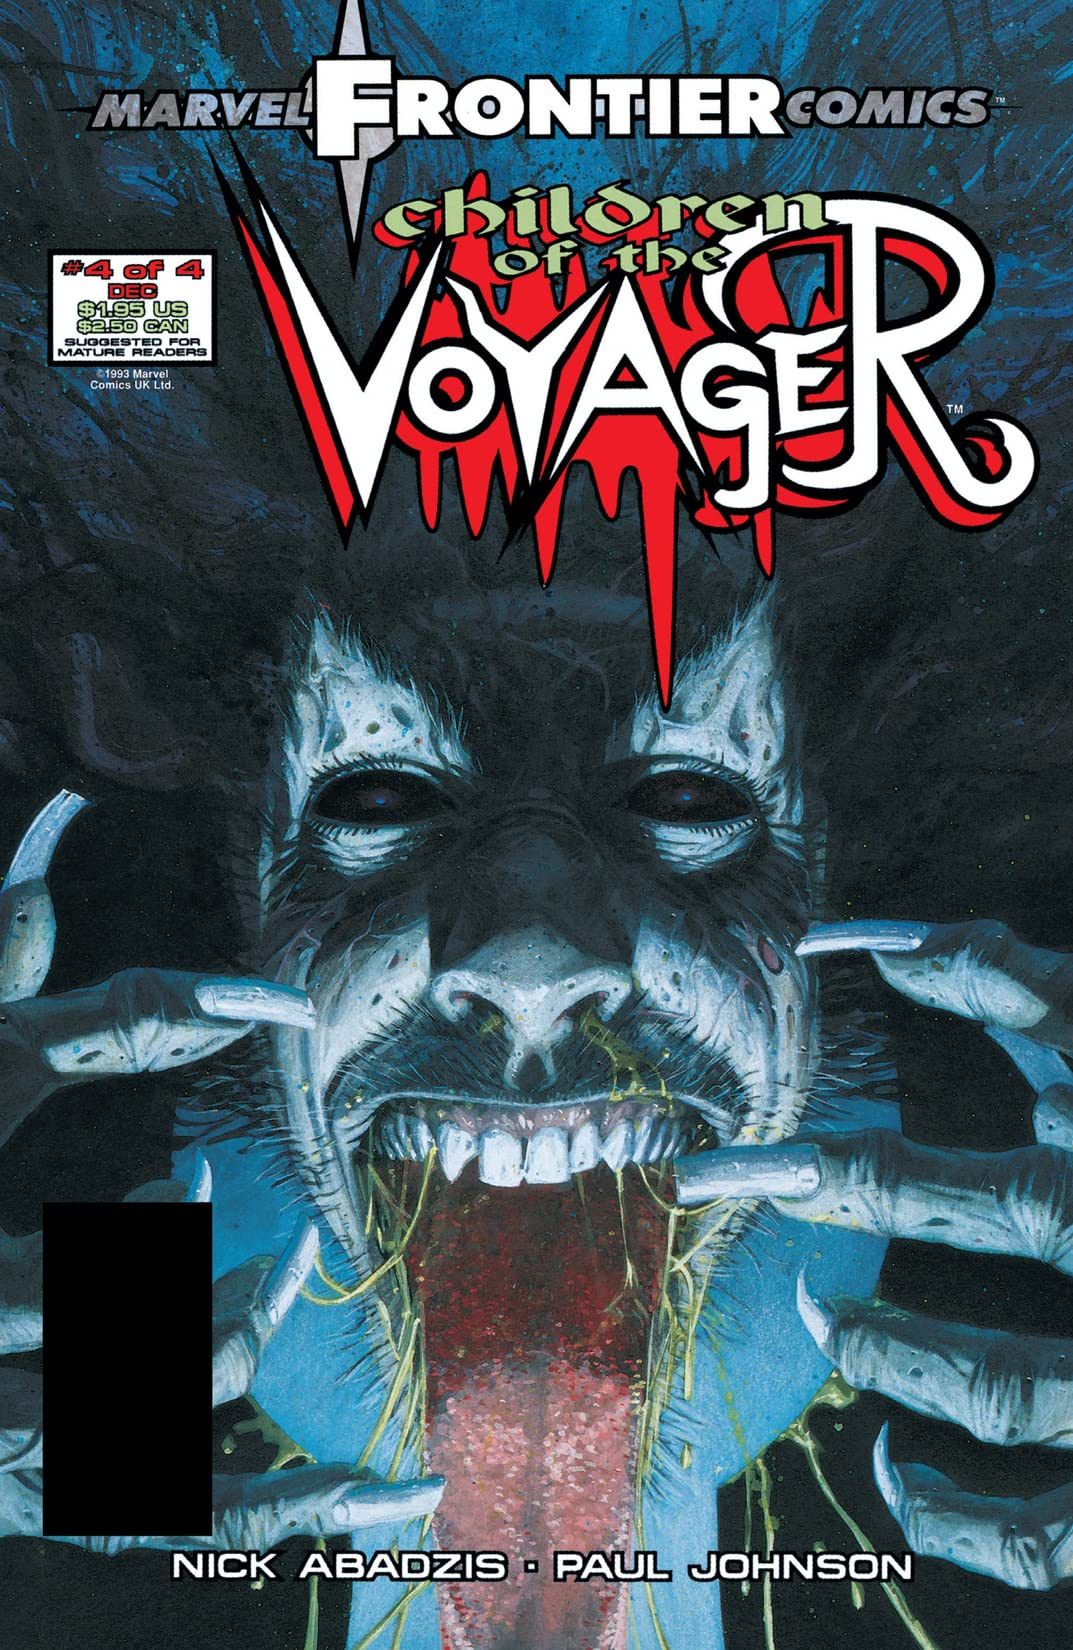 Children of the Voyager (1993) #4 (of 4)